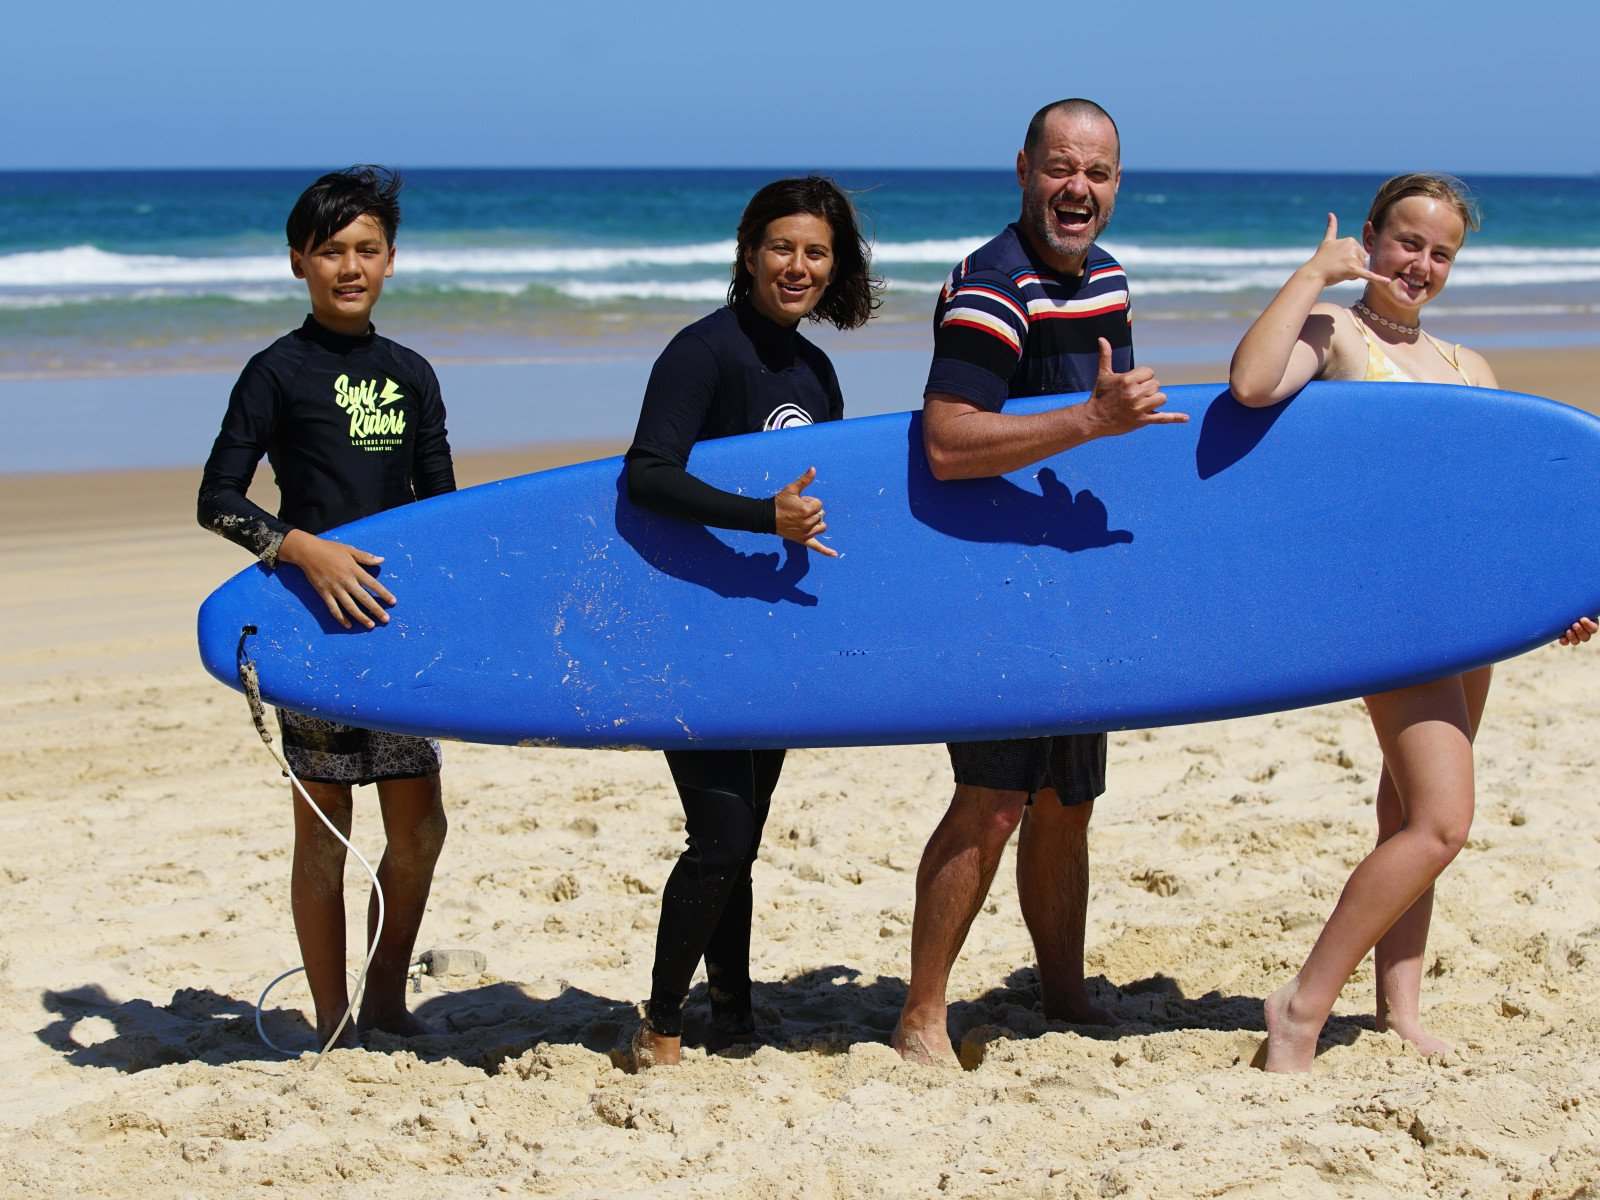 Surfing lessons at South West Rocks